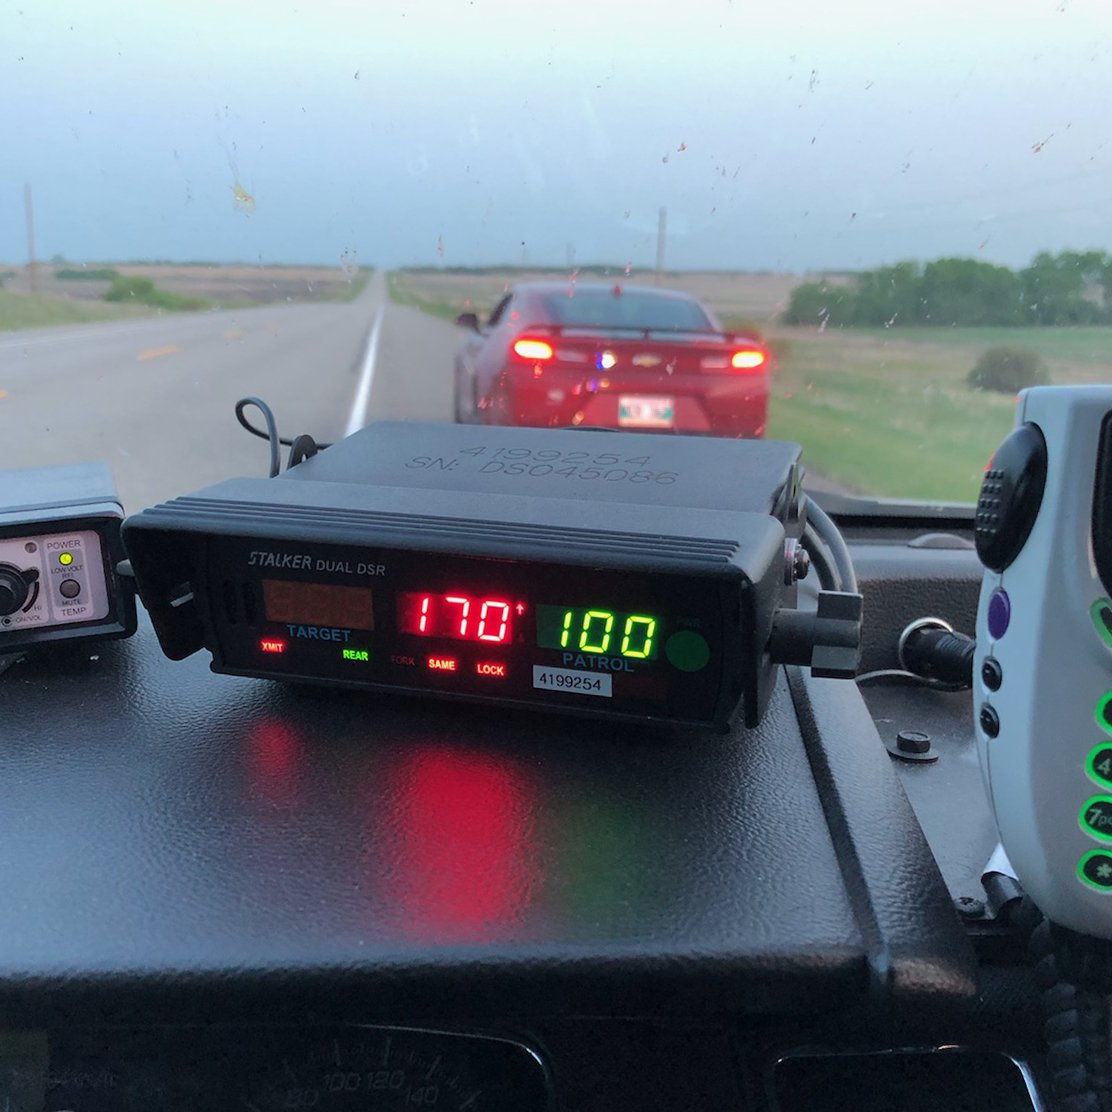 The teen driver was clocked going 70 km/h over the speed limit.